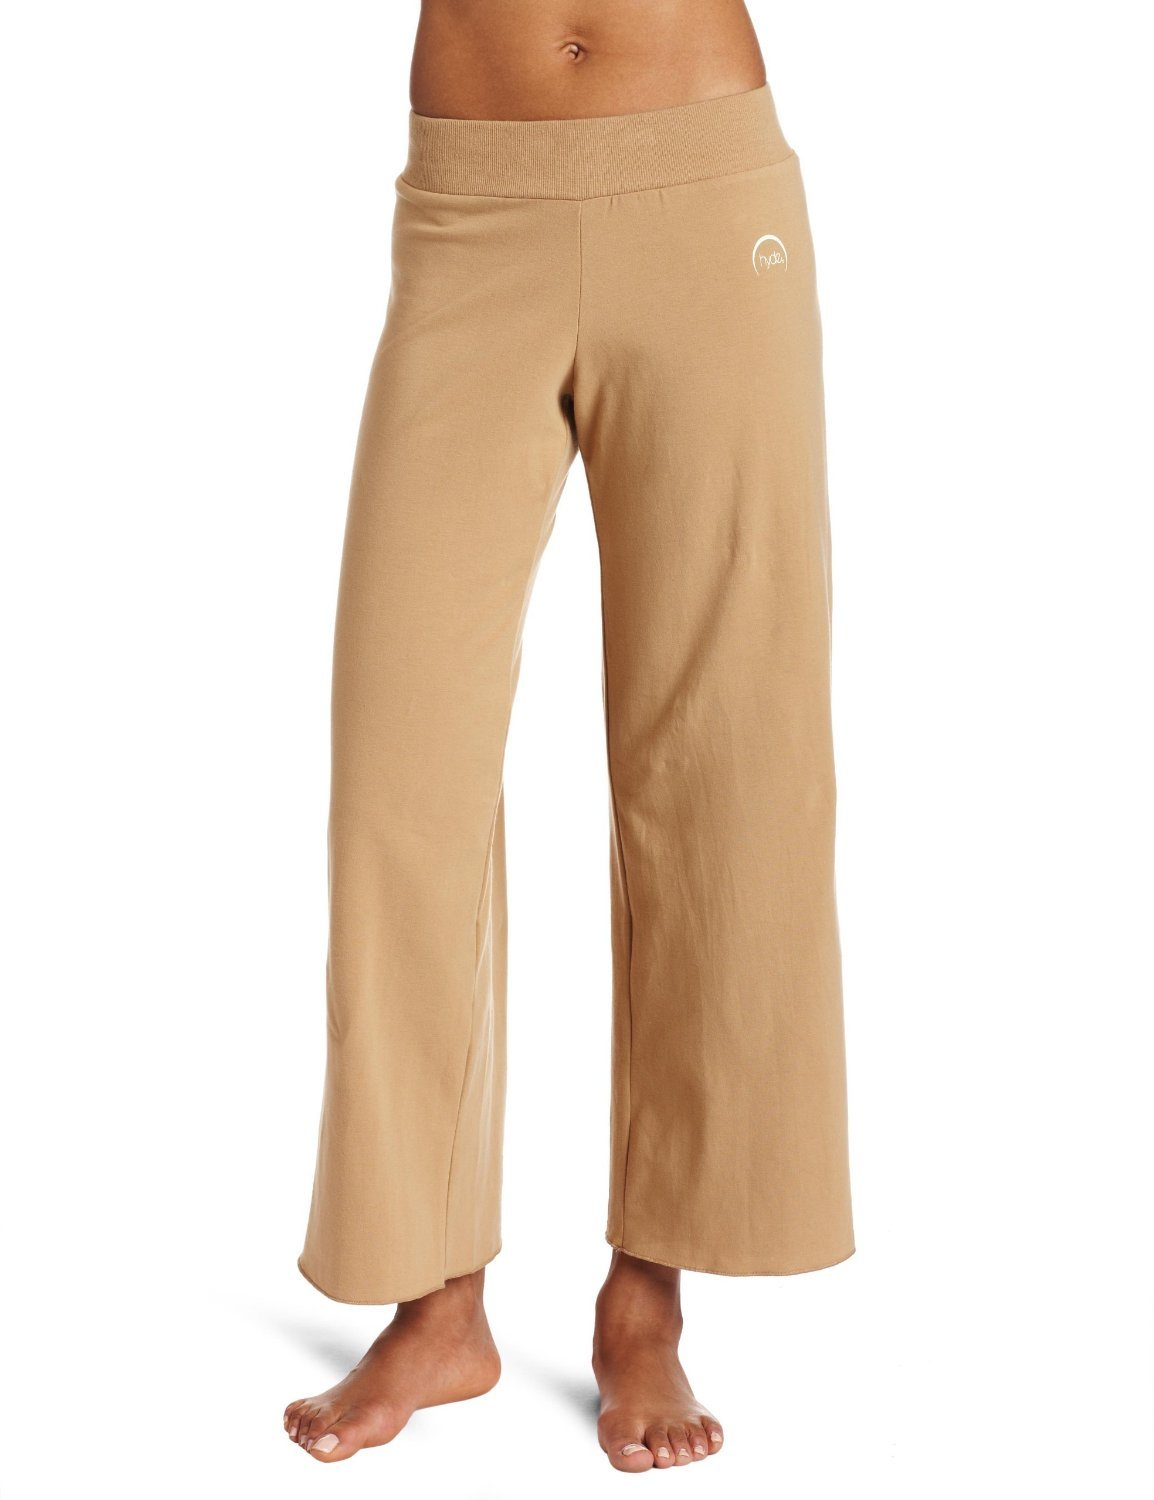 Lastest Clothing Shoes Accessories Gt Women39s Clothing Gt Pants